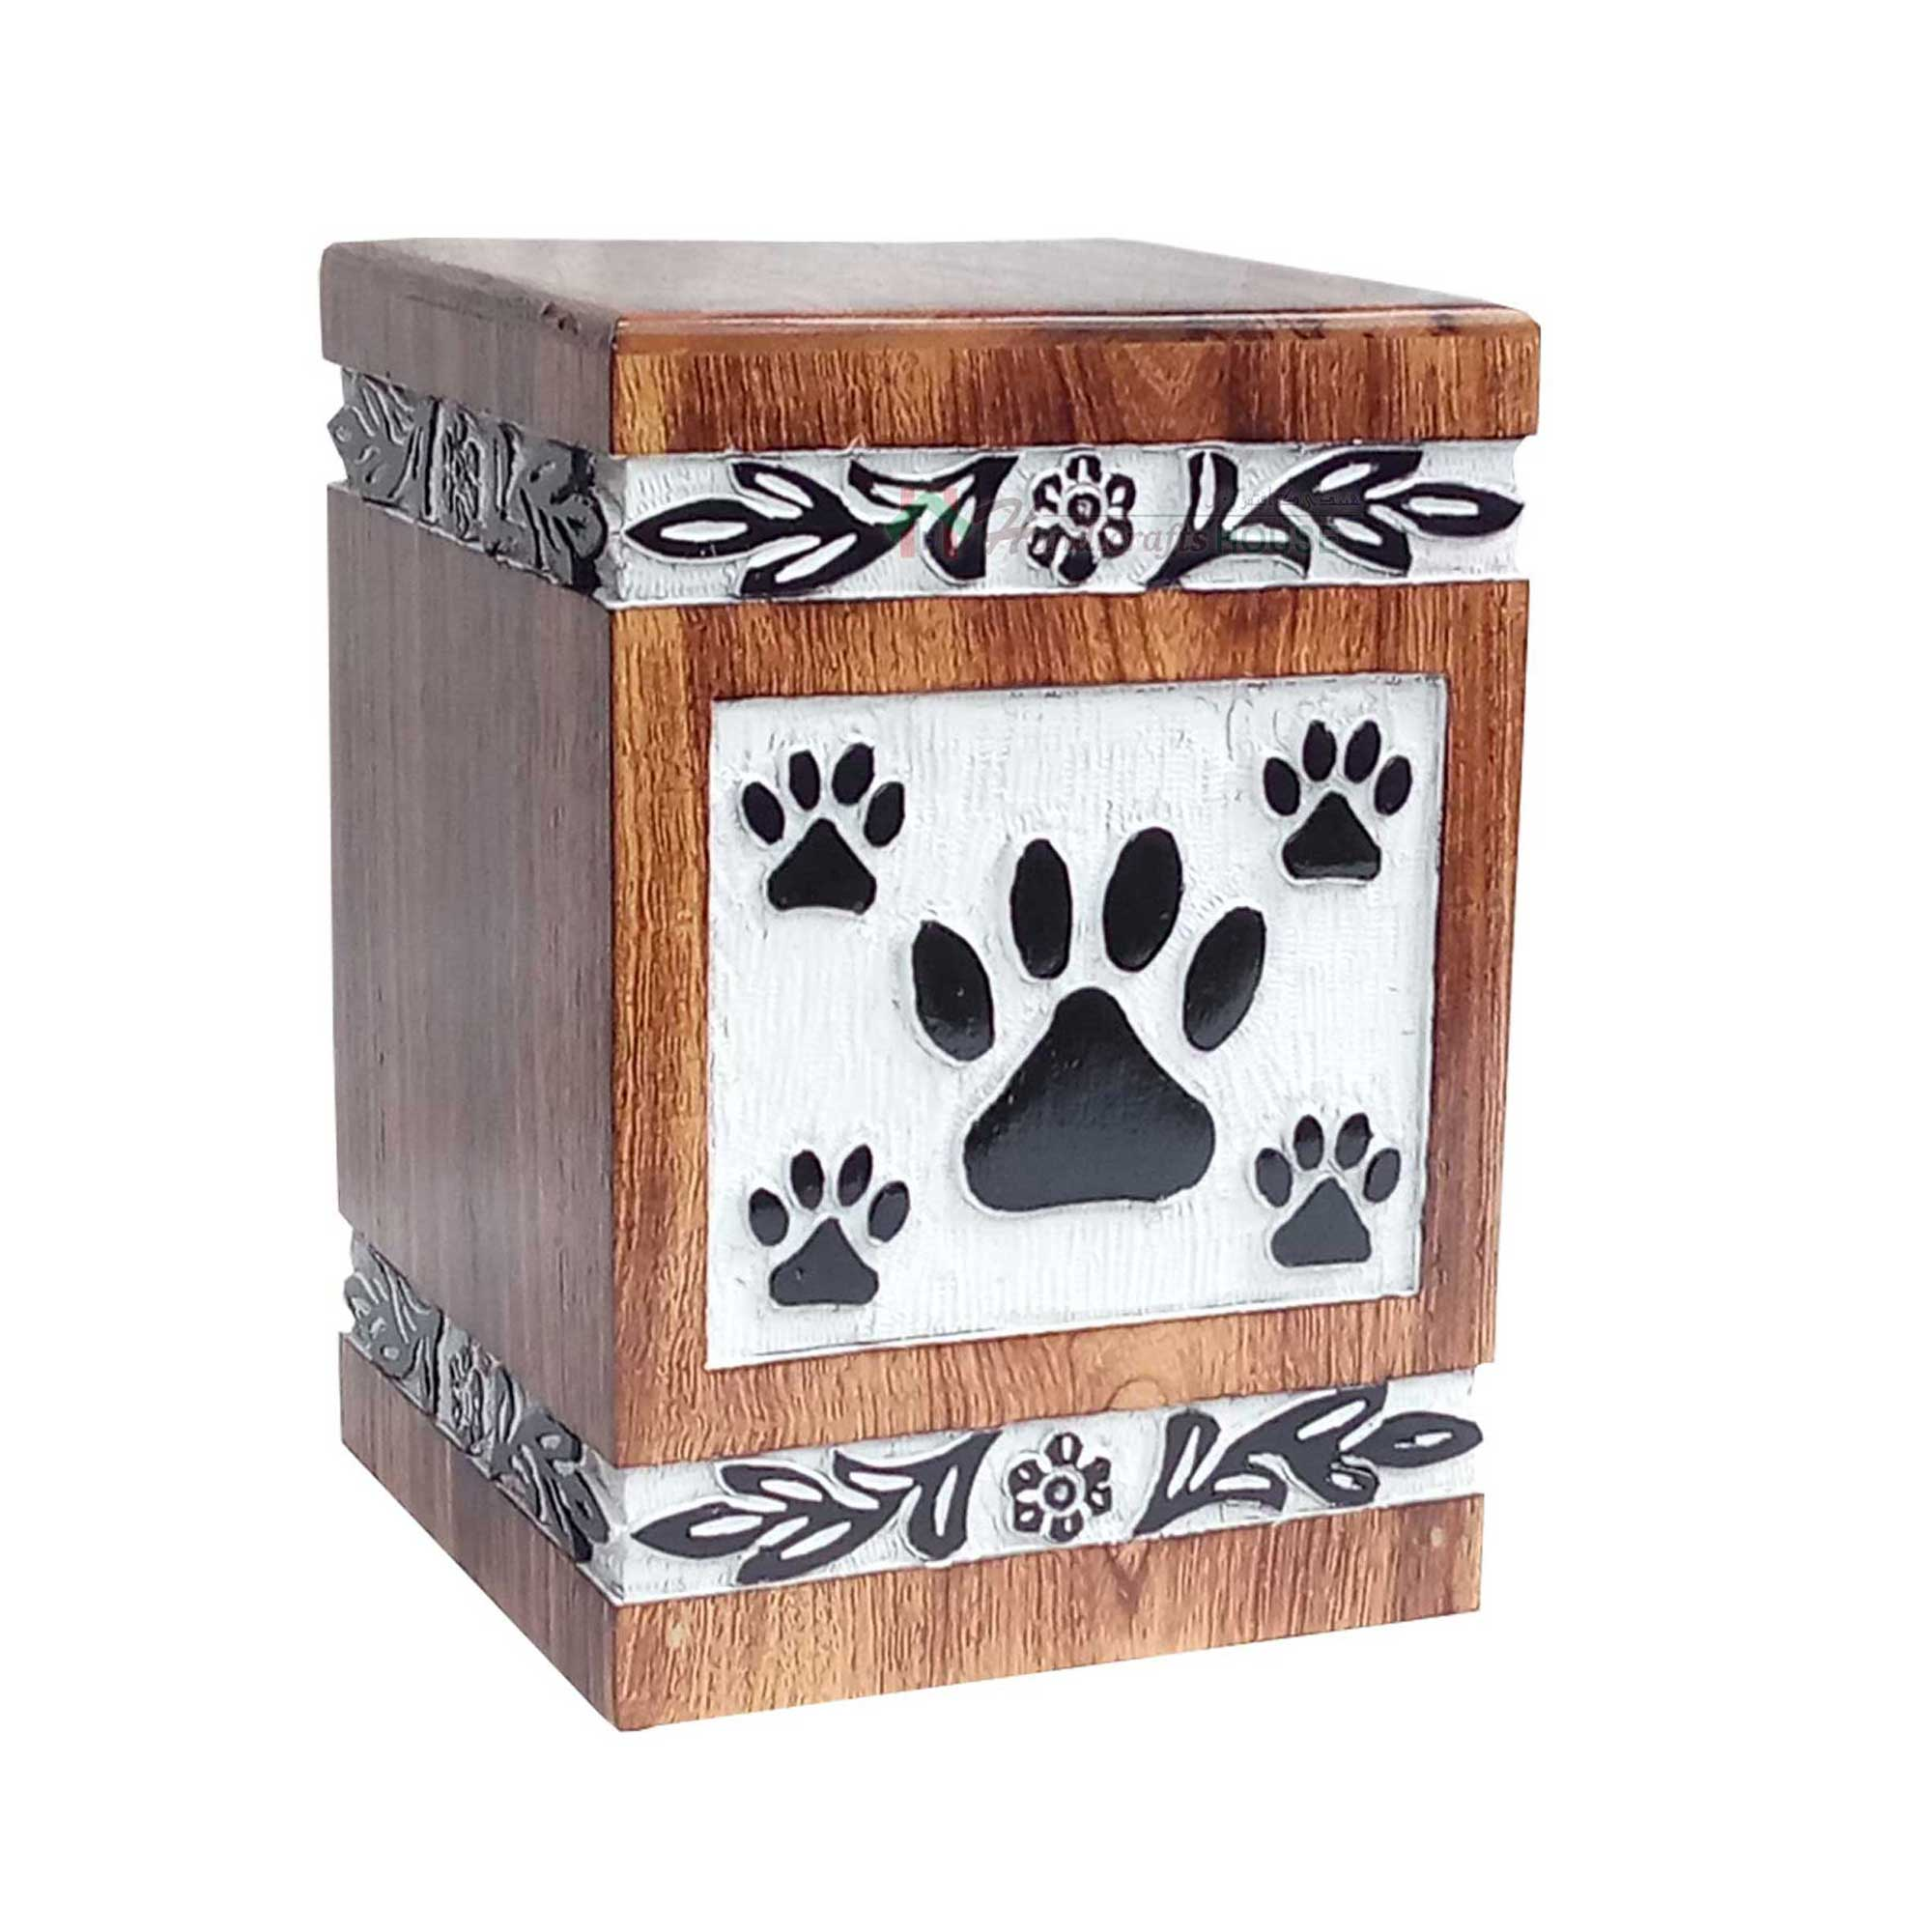 Wooden Box For Pet Ashes, Memorials Keepsake Wood Urns, Funeral Cats Urns, Burial Boxes